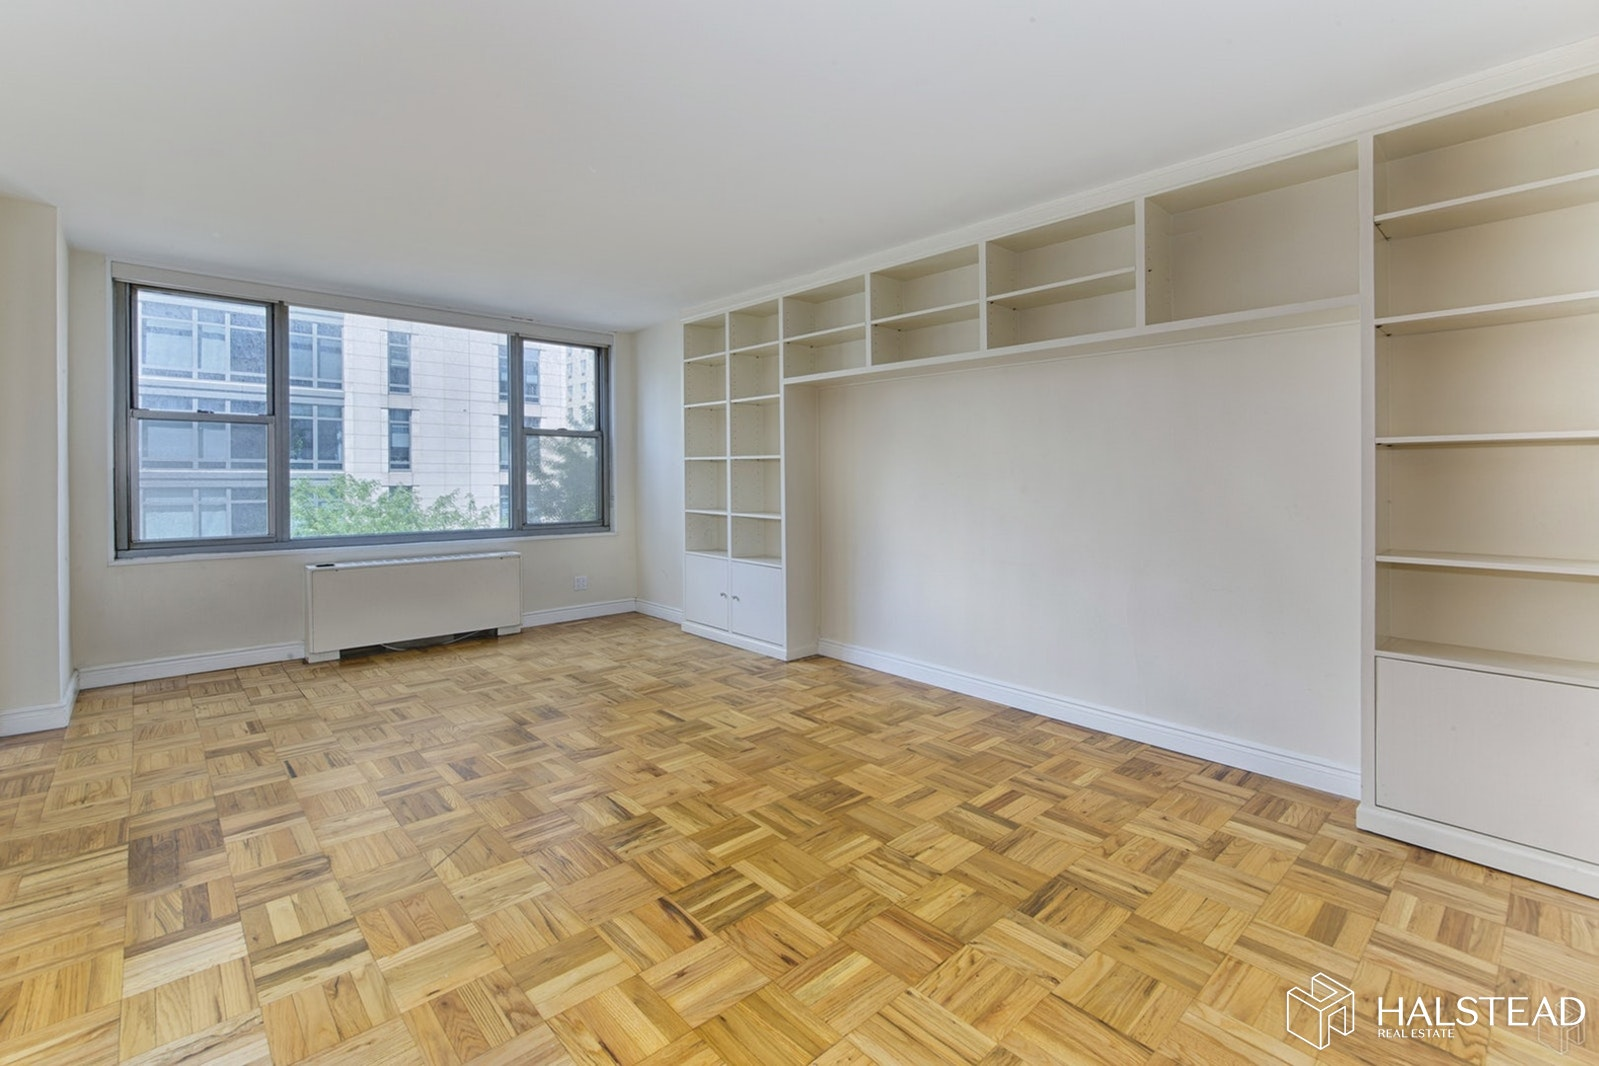 500 East 83rd Street 4d, Upper East Side, NYC, 10028, $725,000, Property For Sale, Halstead Real Estate, Photo 2